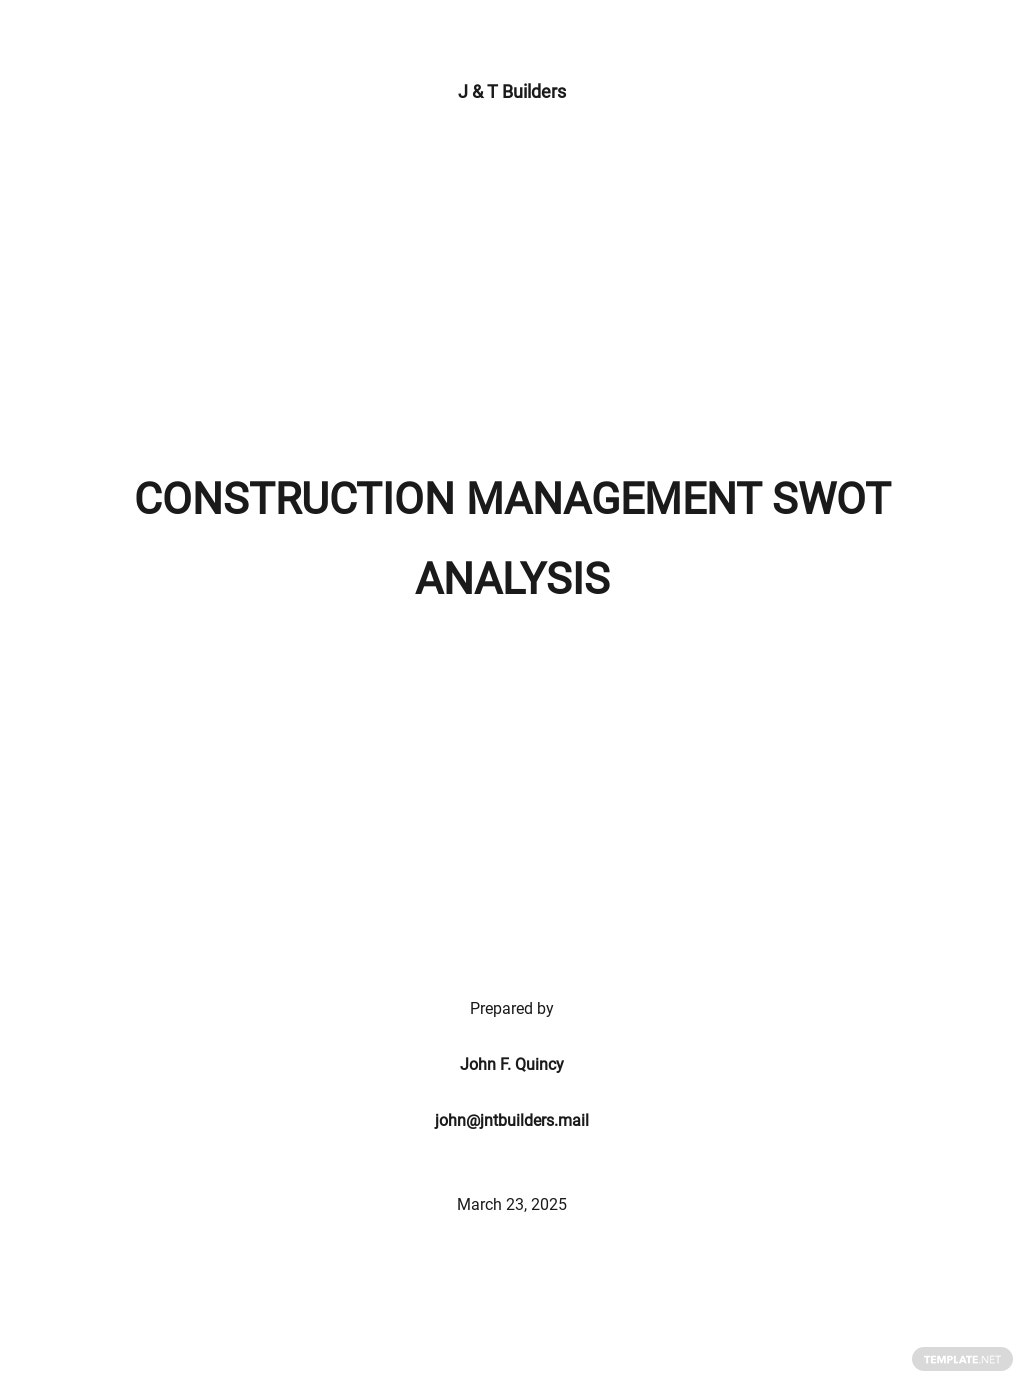 Construction Management SWOT Analysis Template